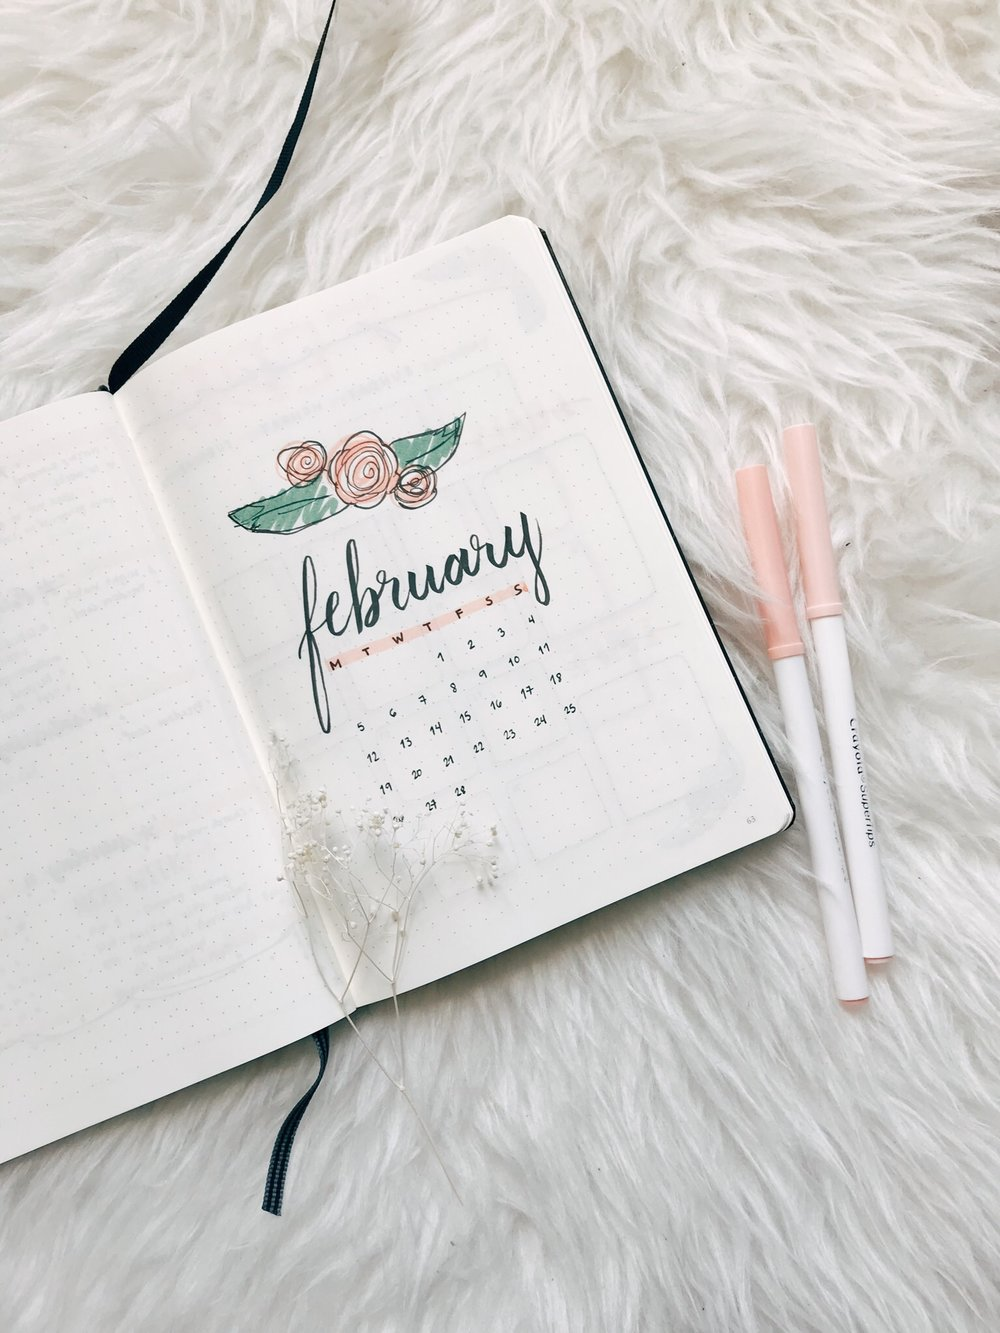 February Plan With Me - 2018